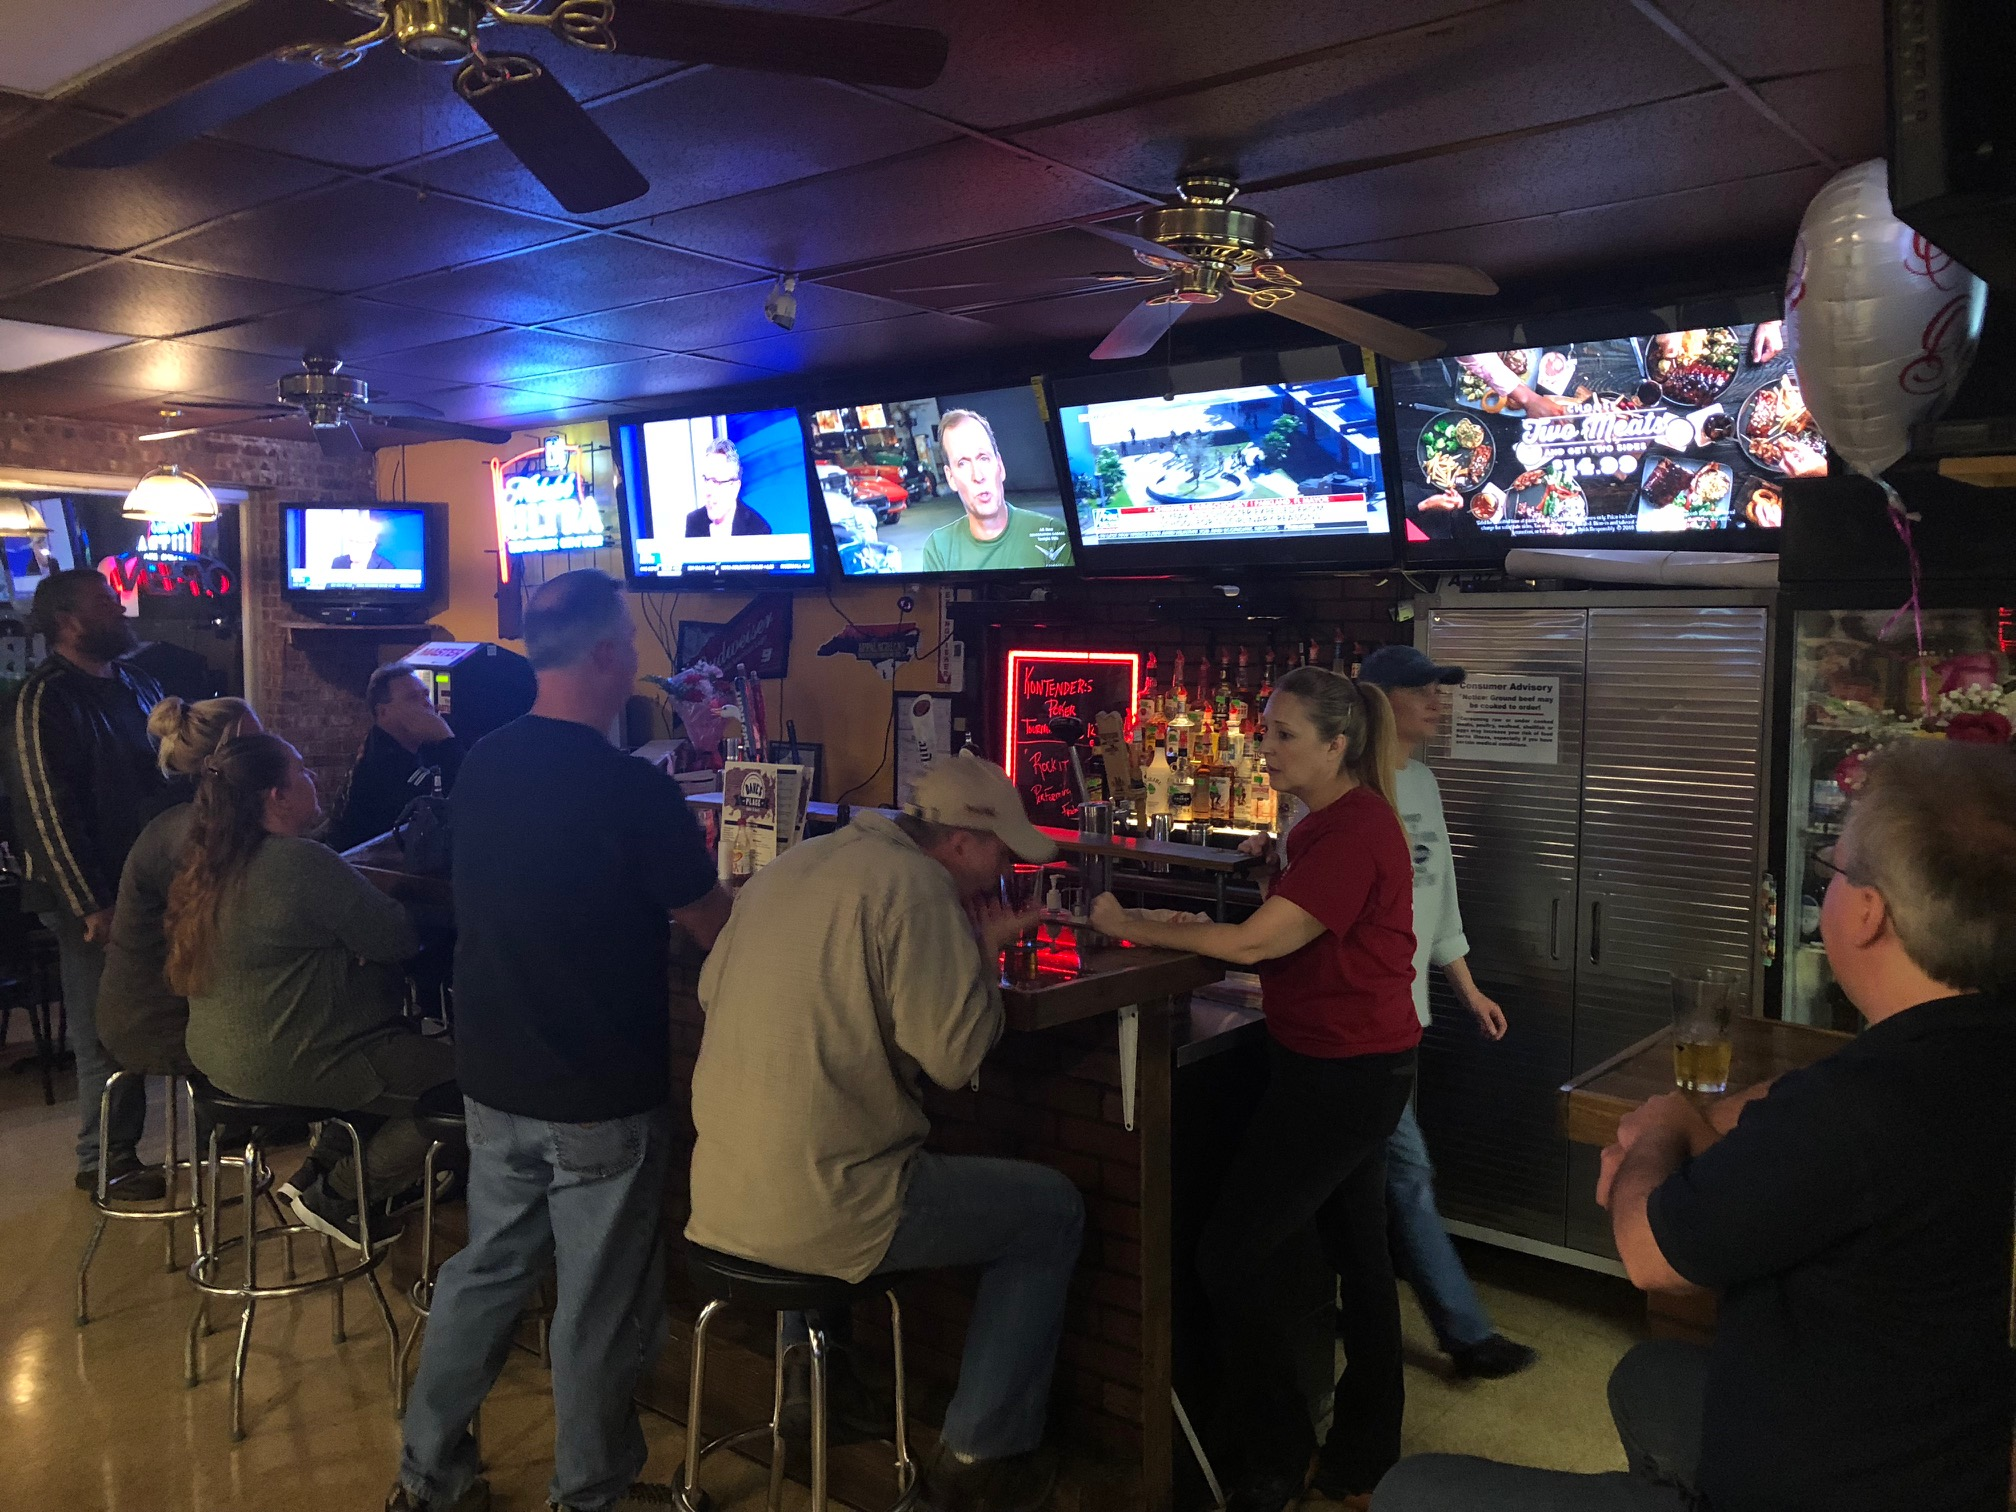 Customers from Aberdeen and Southern Pines enjoy drinks at the bar